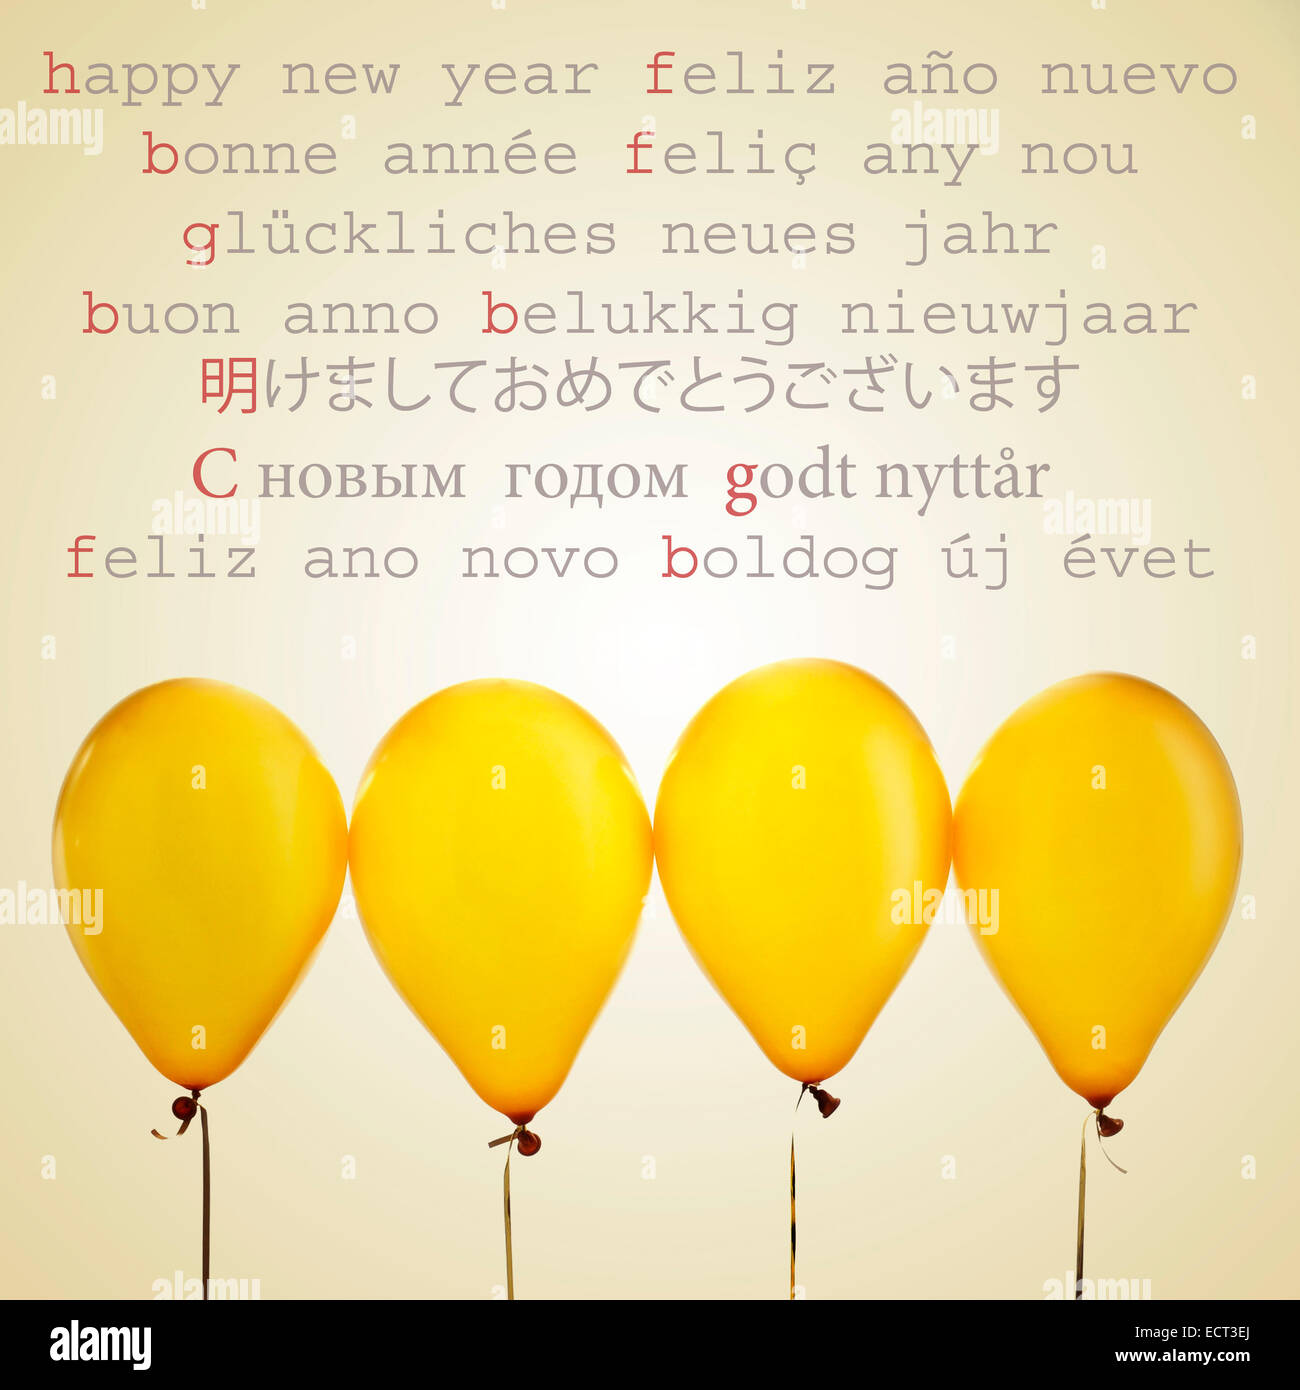 some golden balloons and the text happy new year written in different languages, such as spanish, french, catalan, - Stock Image